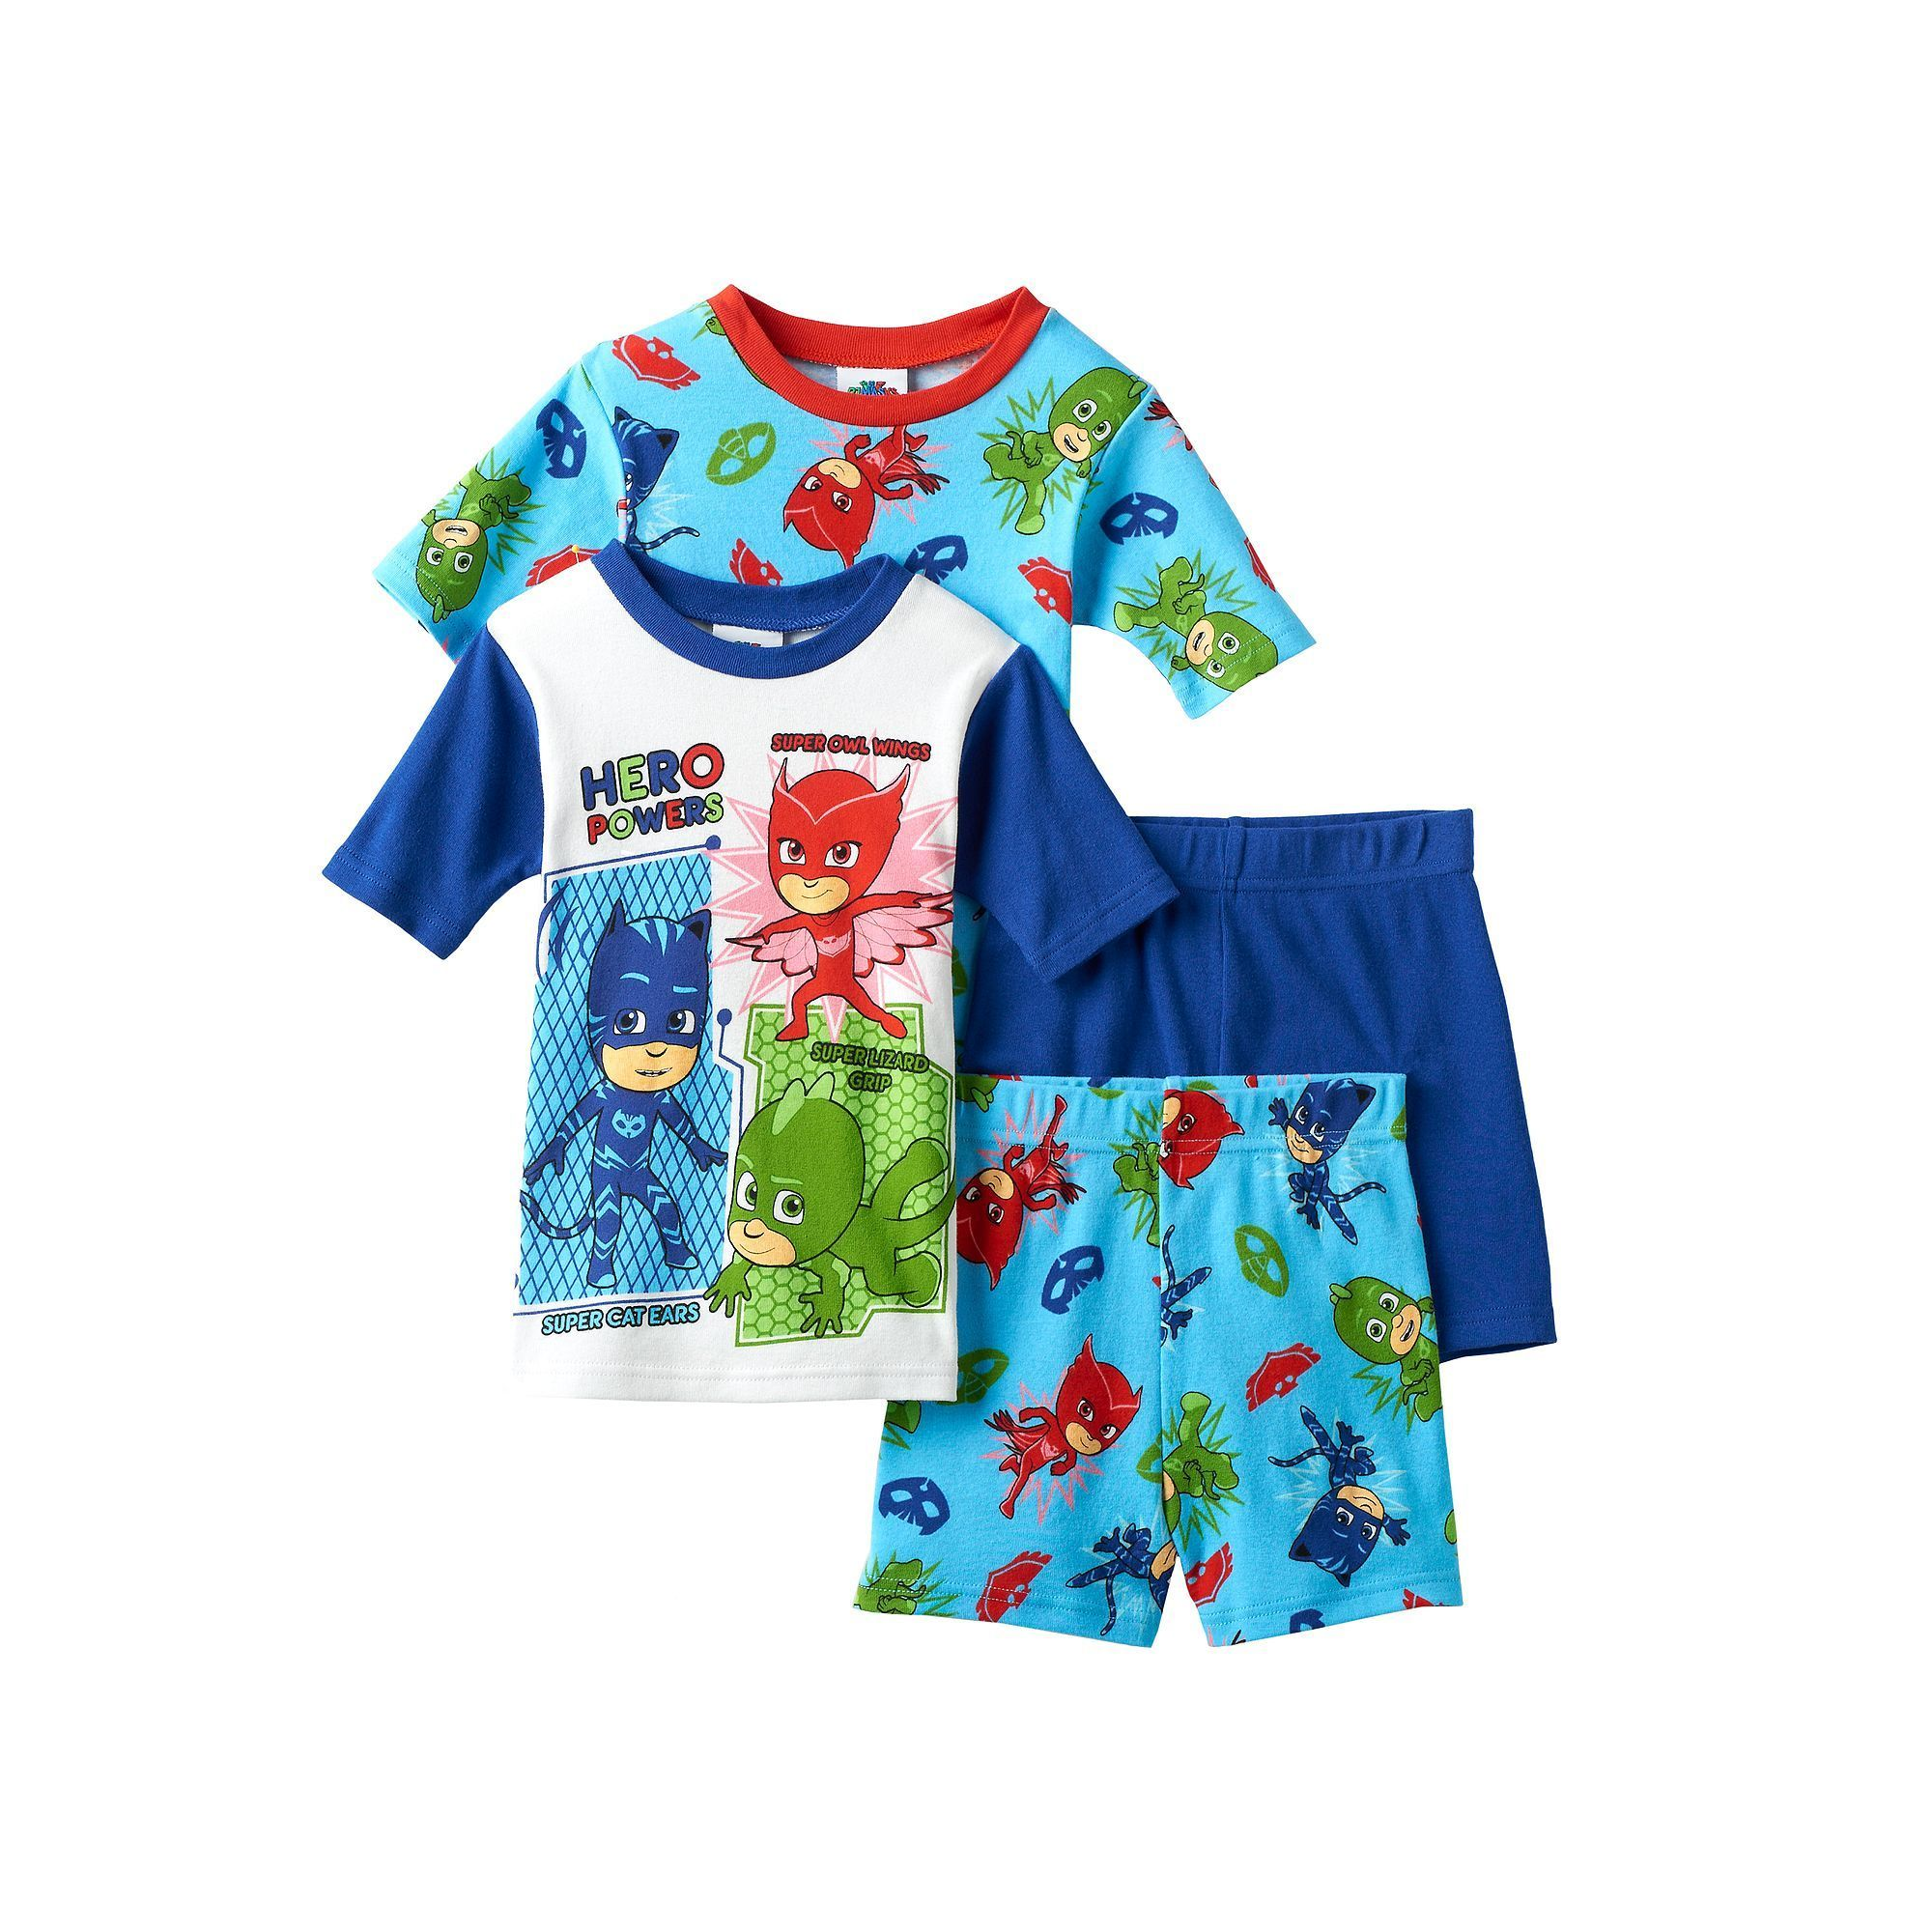 Exceptional Boys 4 8 PJ Masks 4 Piece Pajama Set, Multicolor